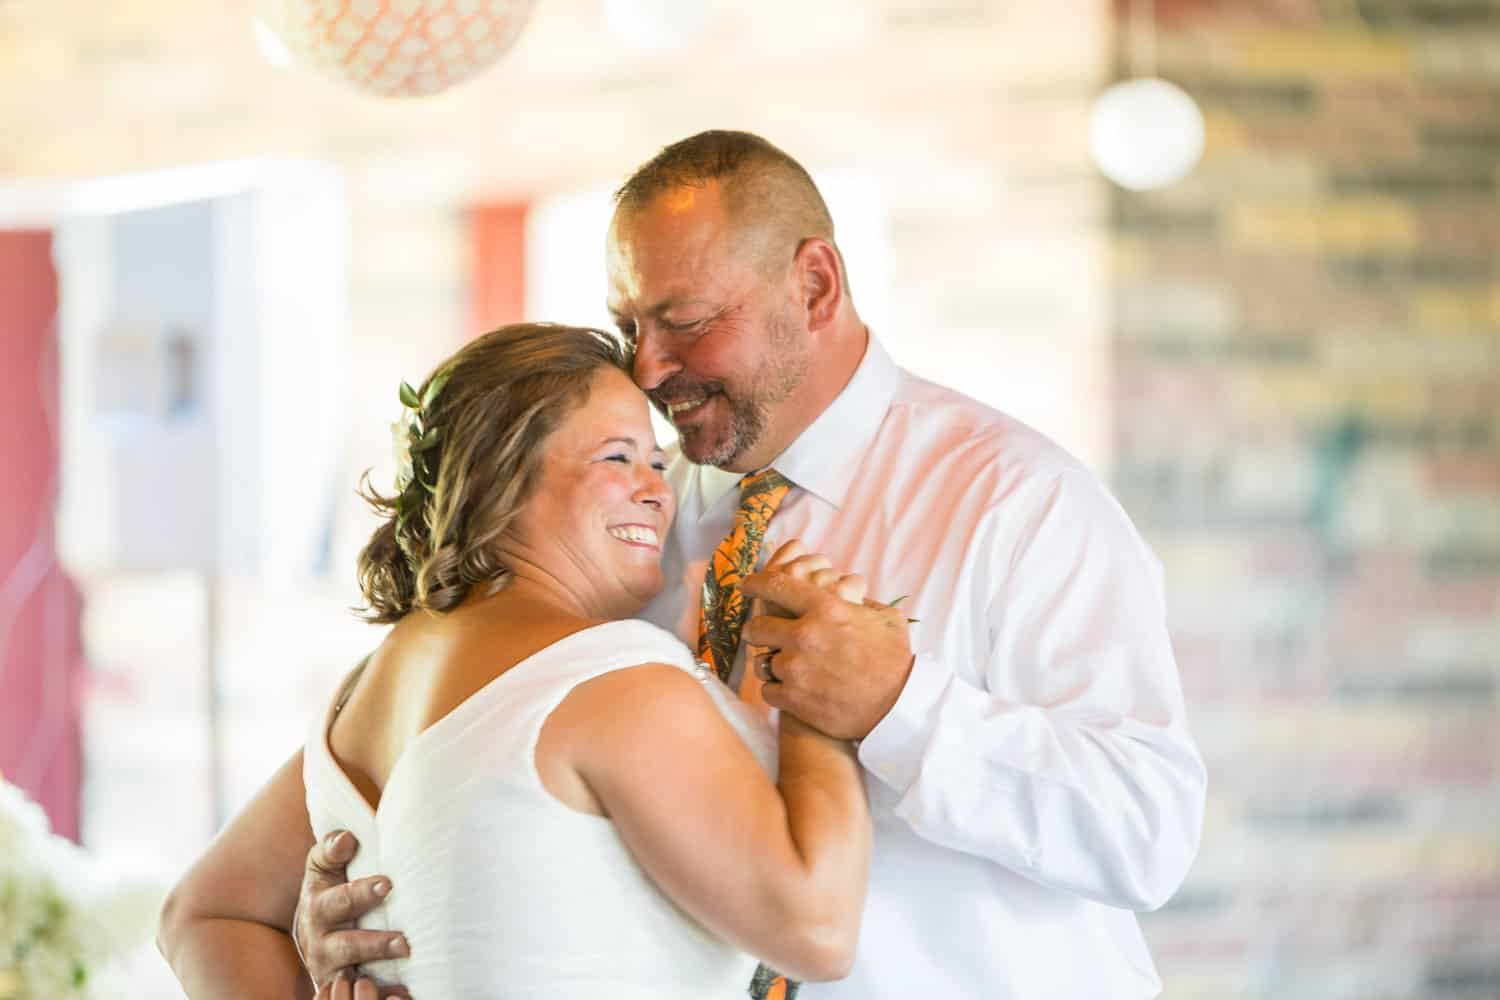 Paula and Dwayne share their first dance at their wedding at Point Gratiot Park.